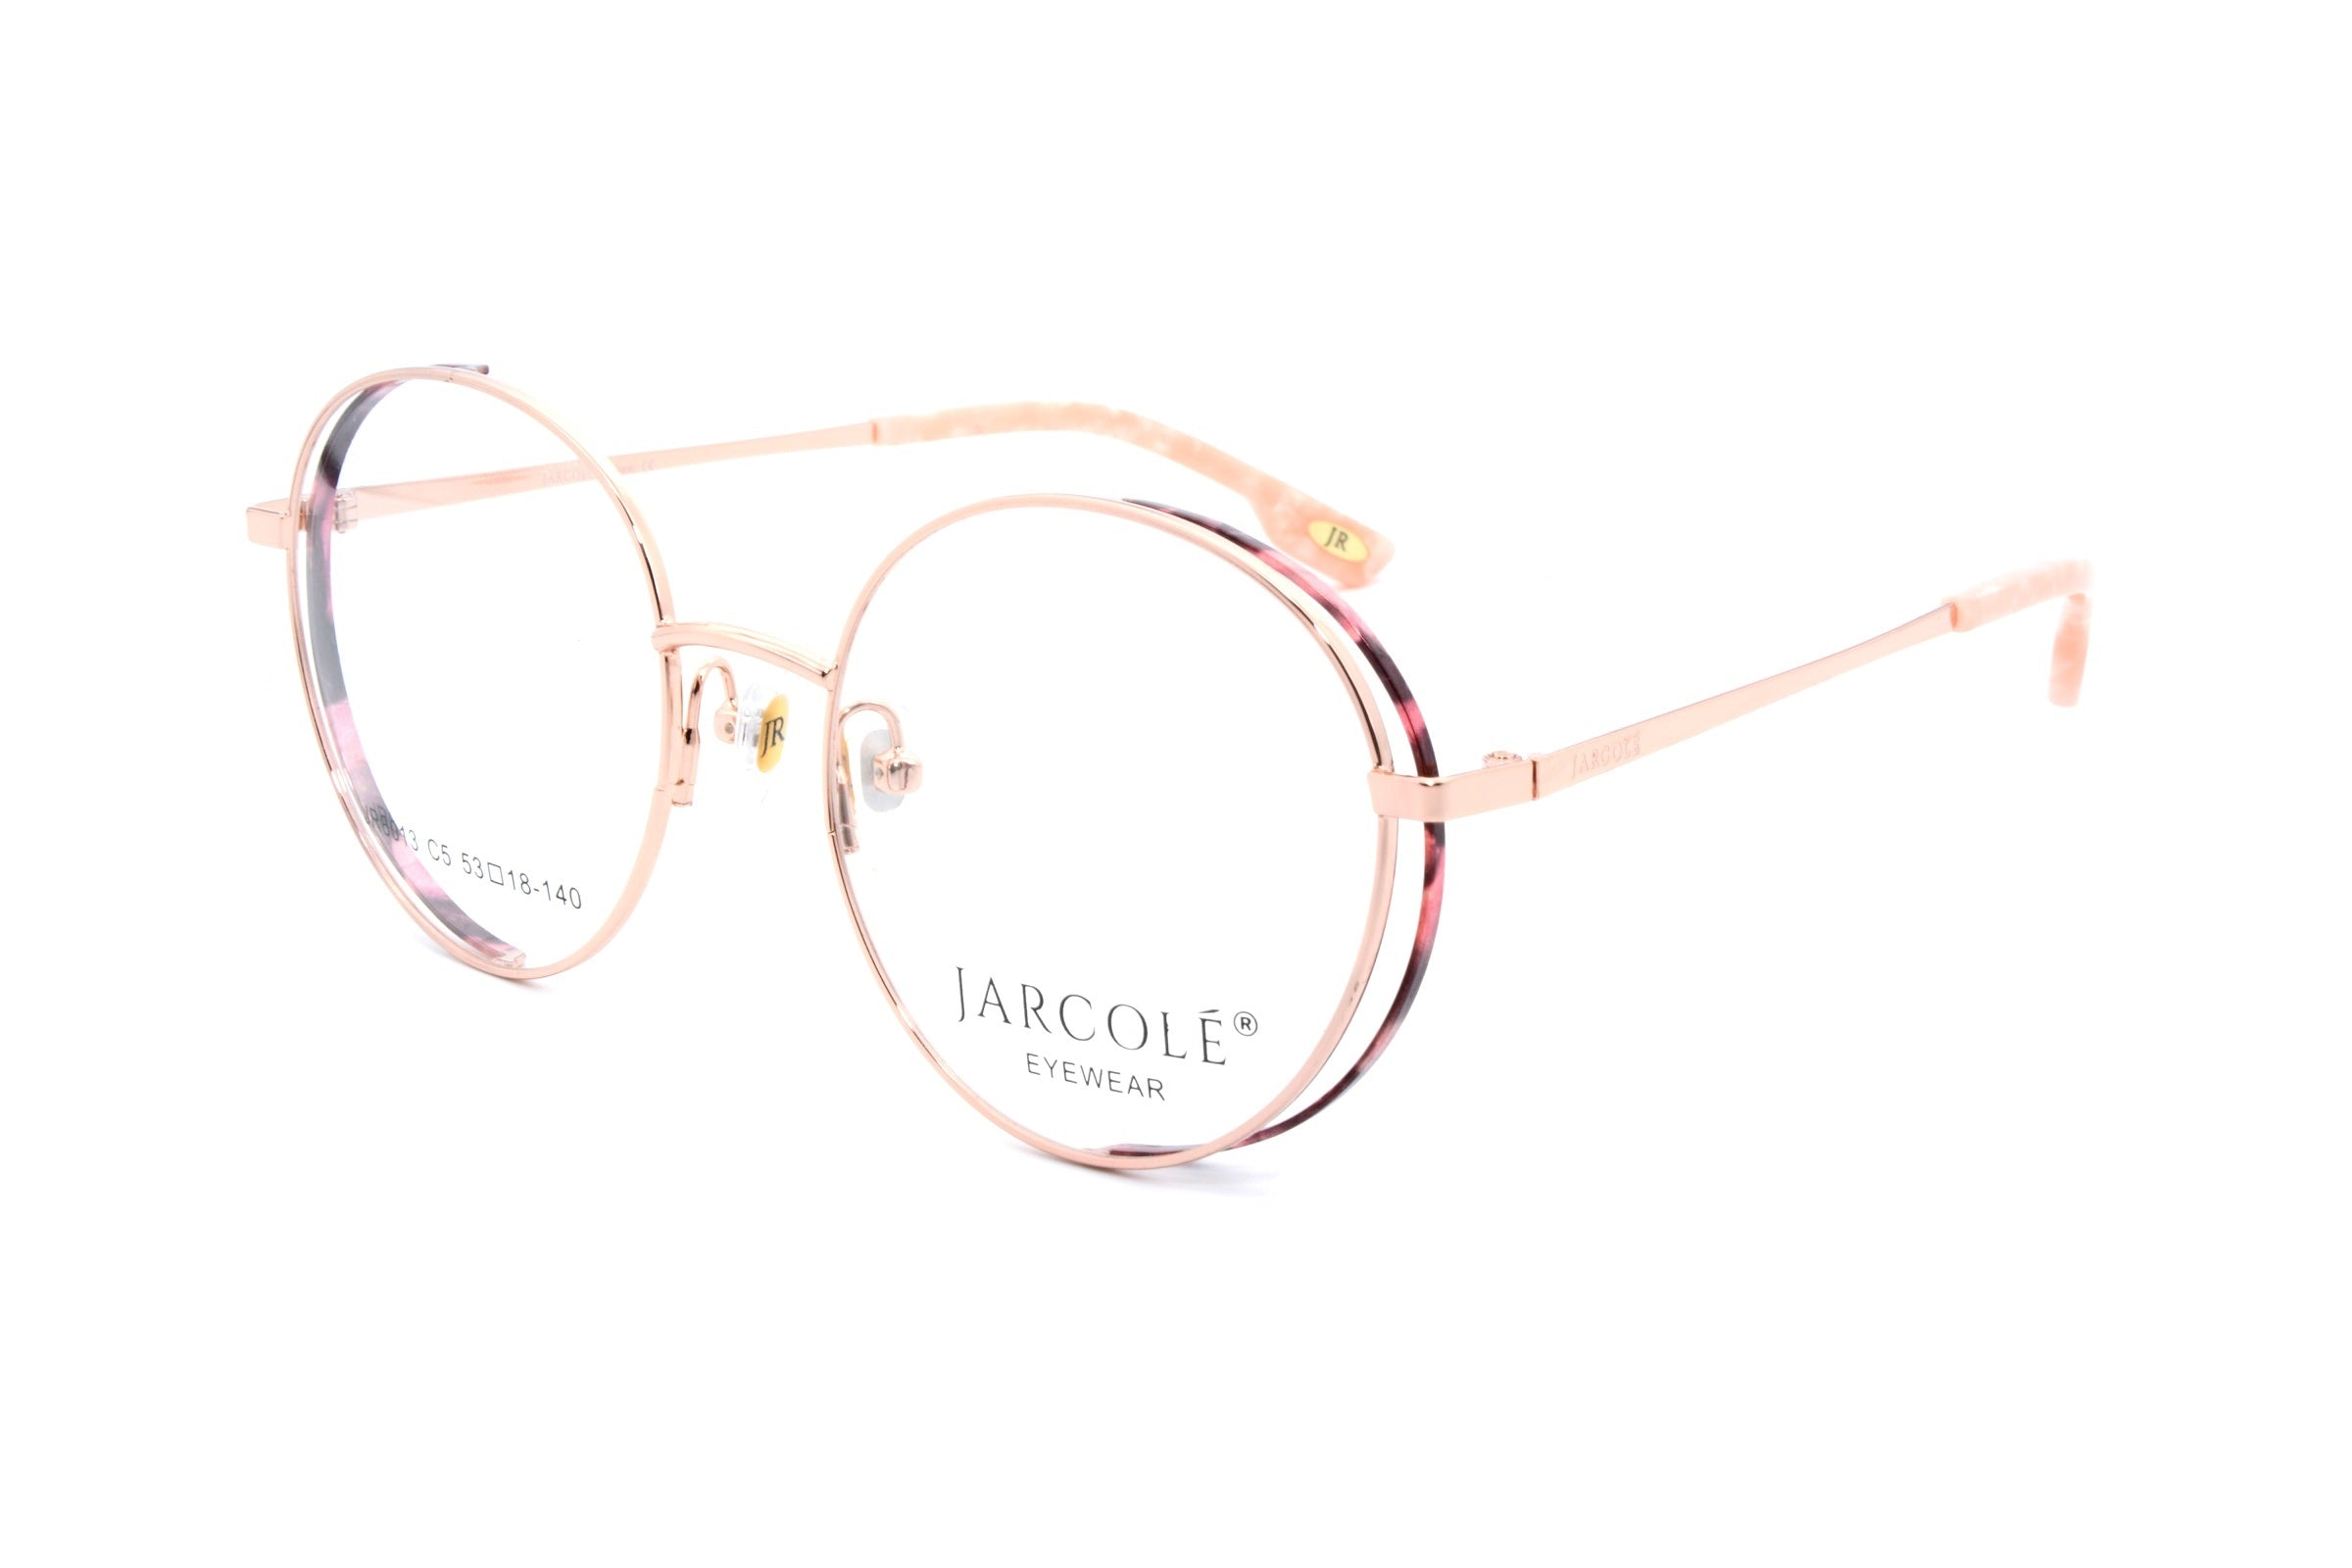 Jarcole eyewear 8013, C5 - Optics Trading